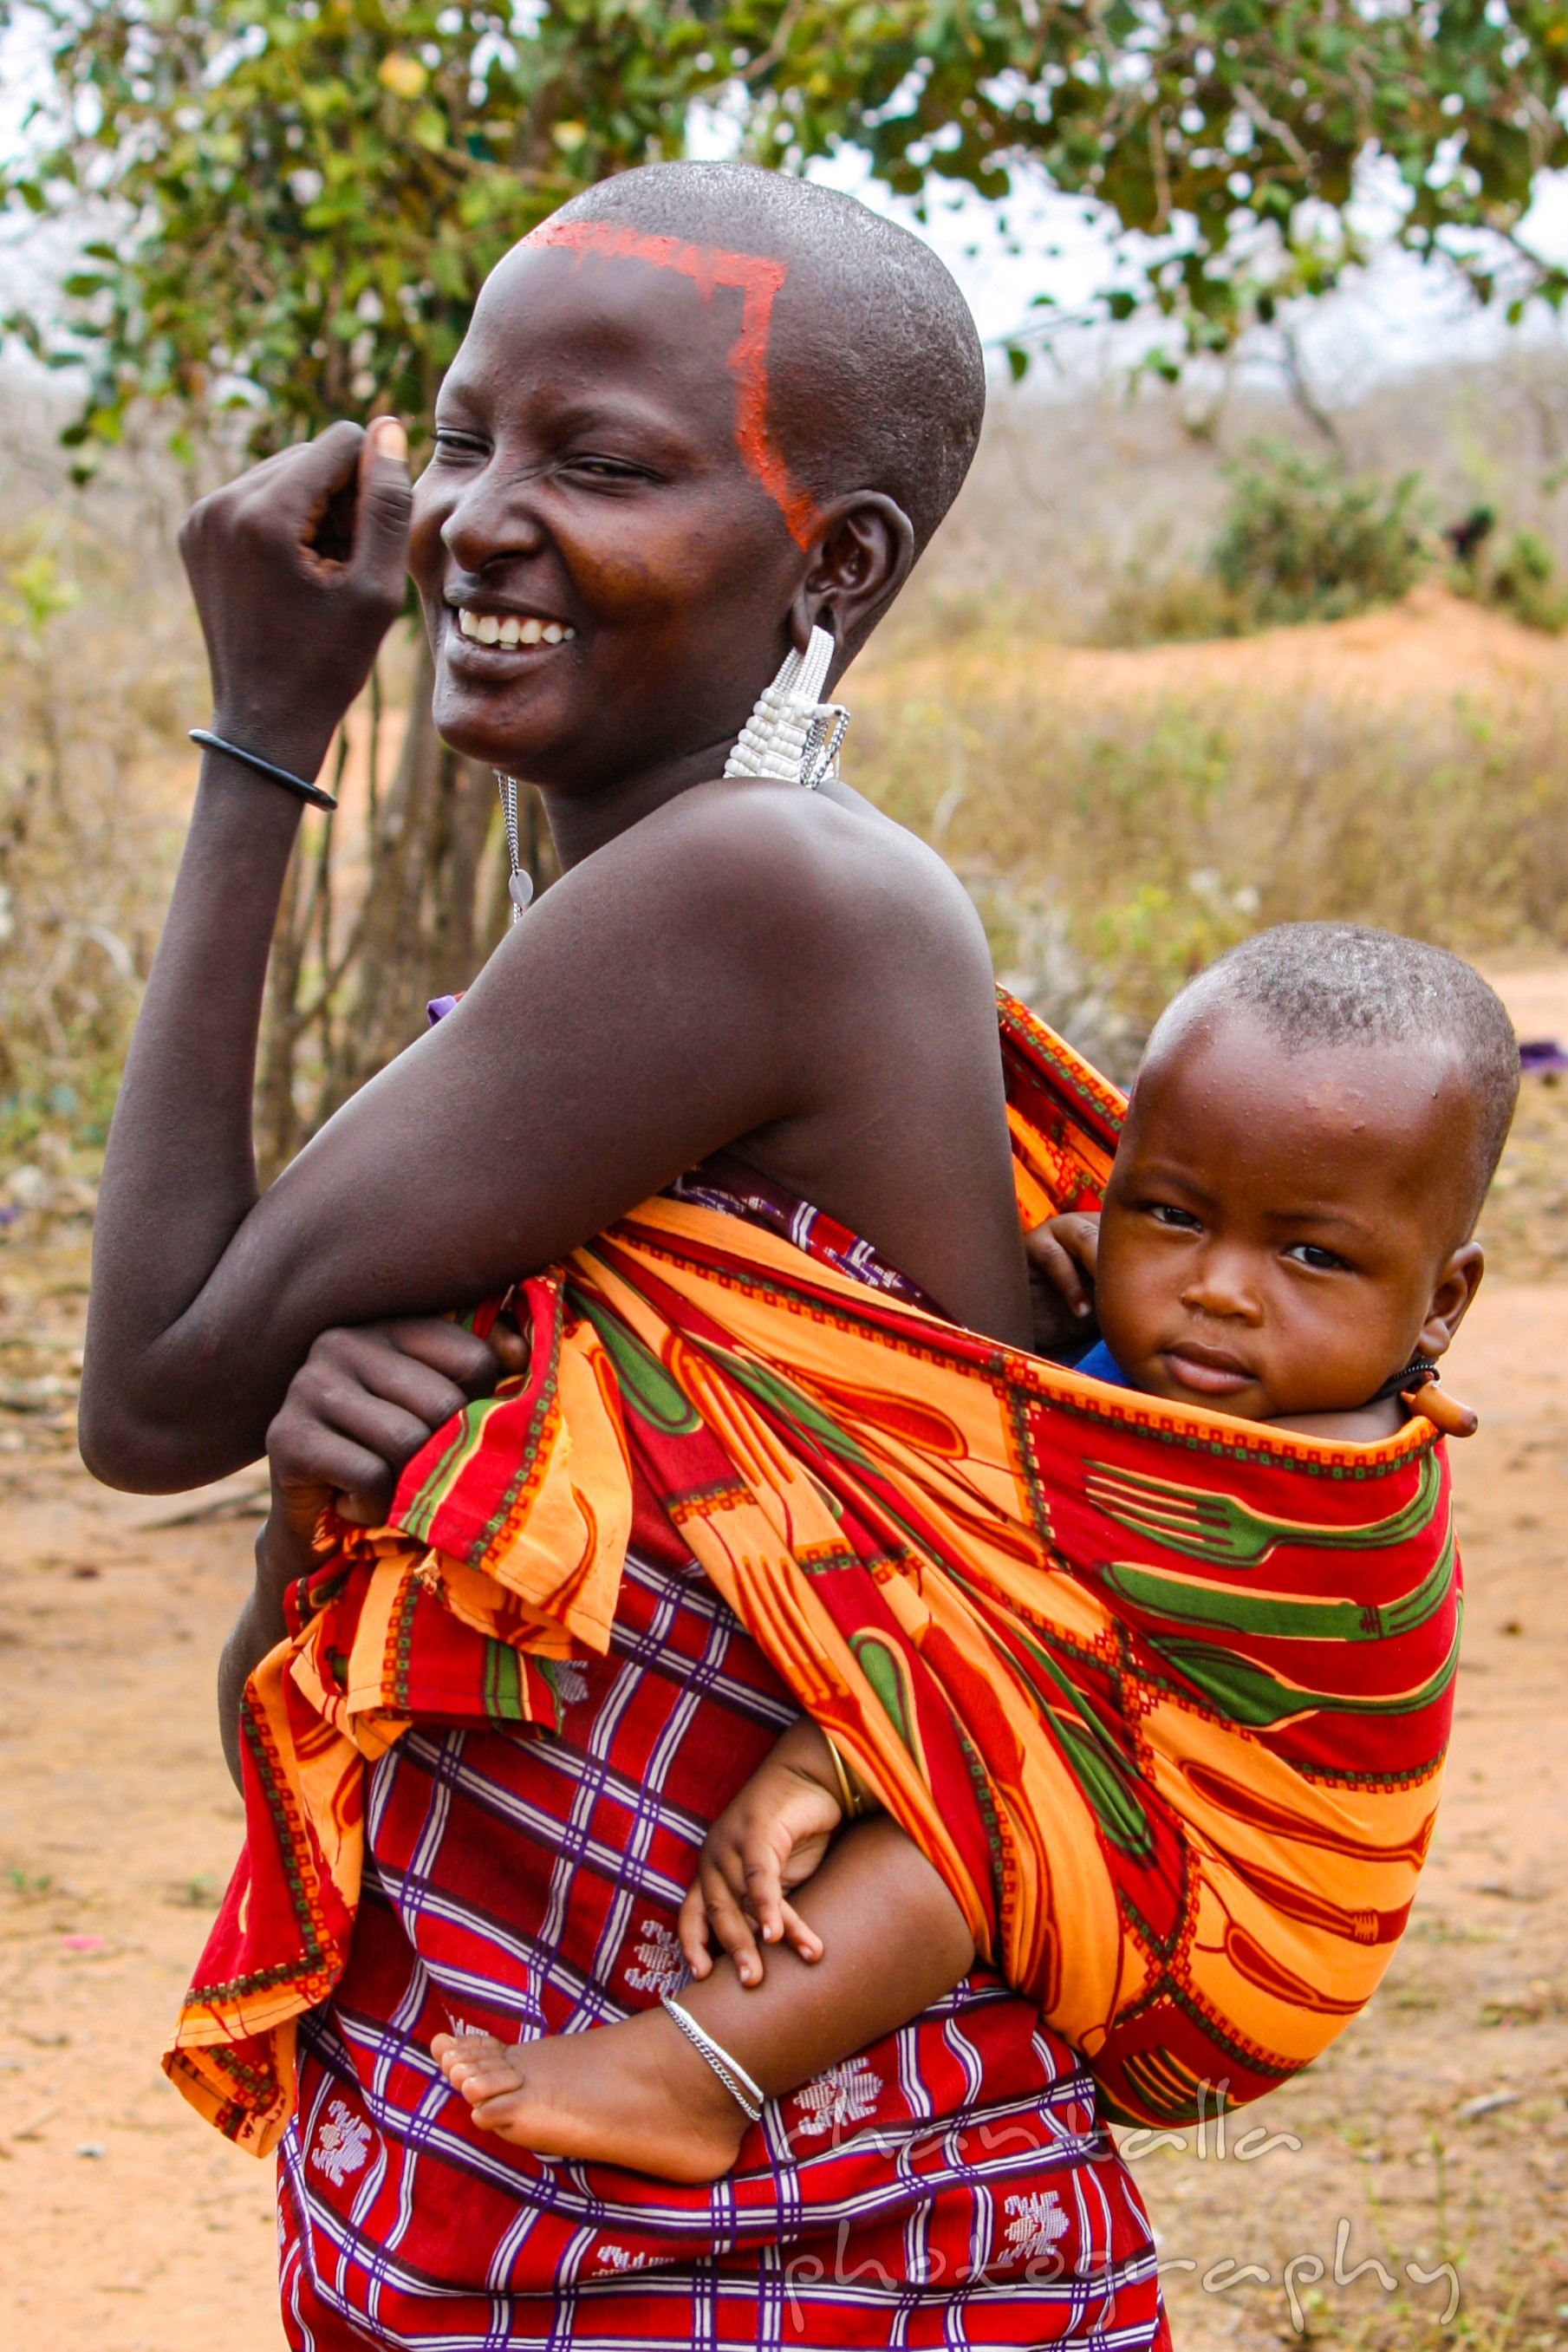 This traditional Masai woman lives in Kenya, and posed for the camera with her beautiful baby.